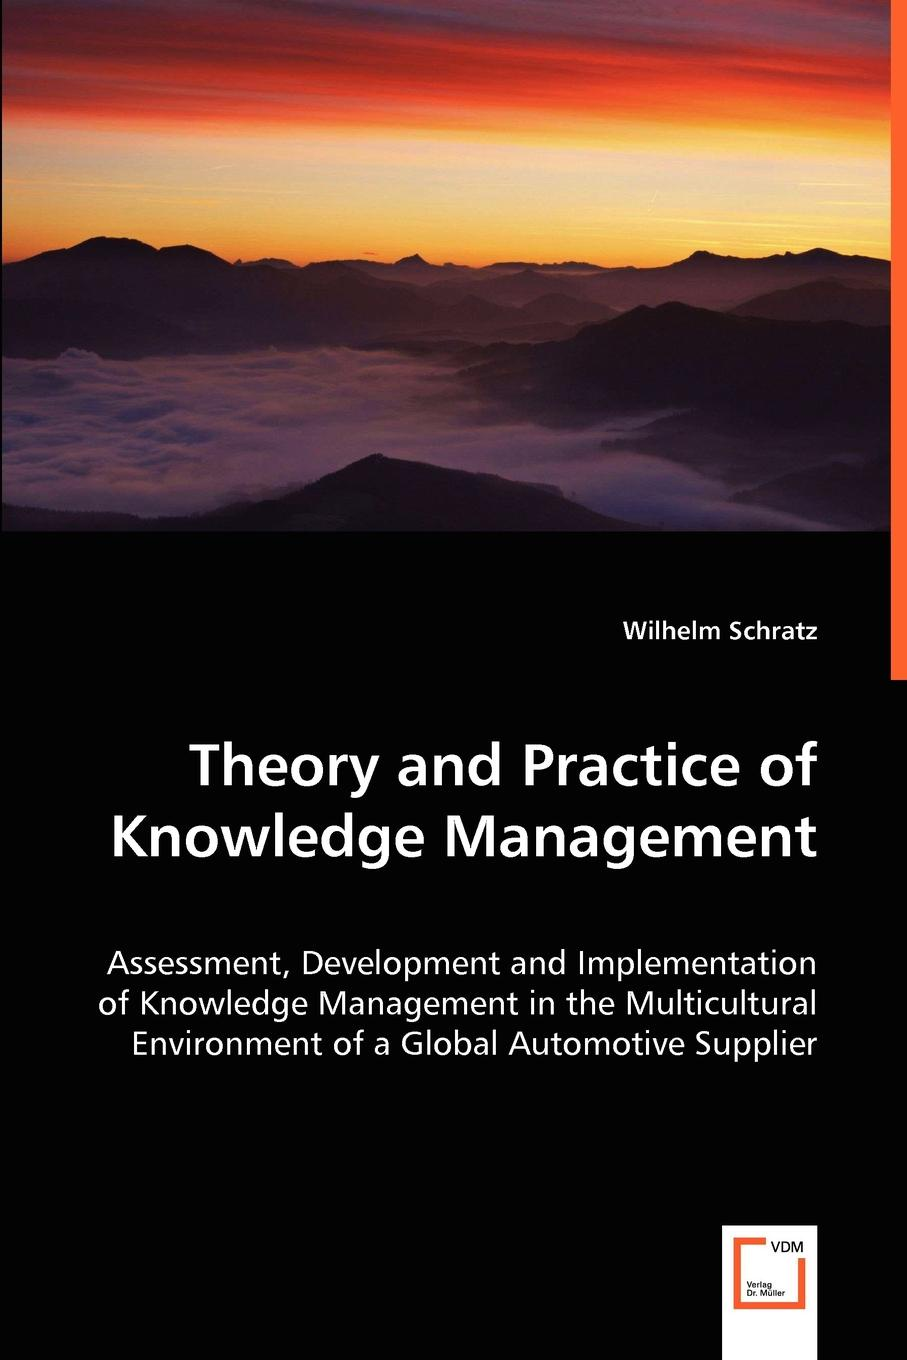 Wilhelm Schratz Theory and Practice of Knowledge Management mohamed msoroka project design and management knowledge and project management skills